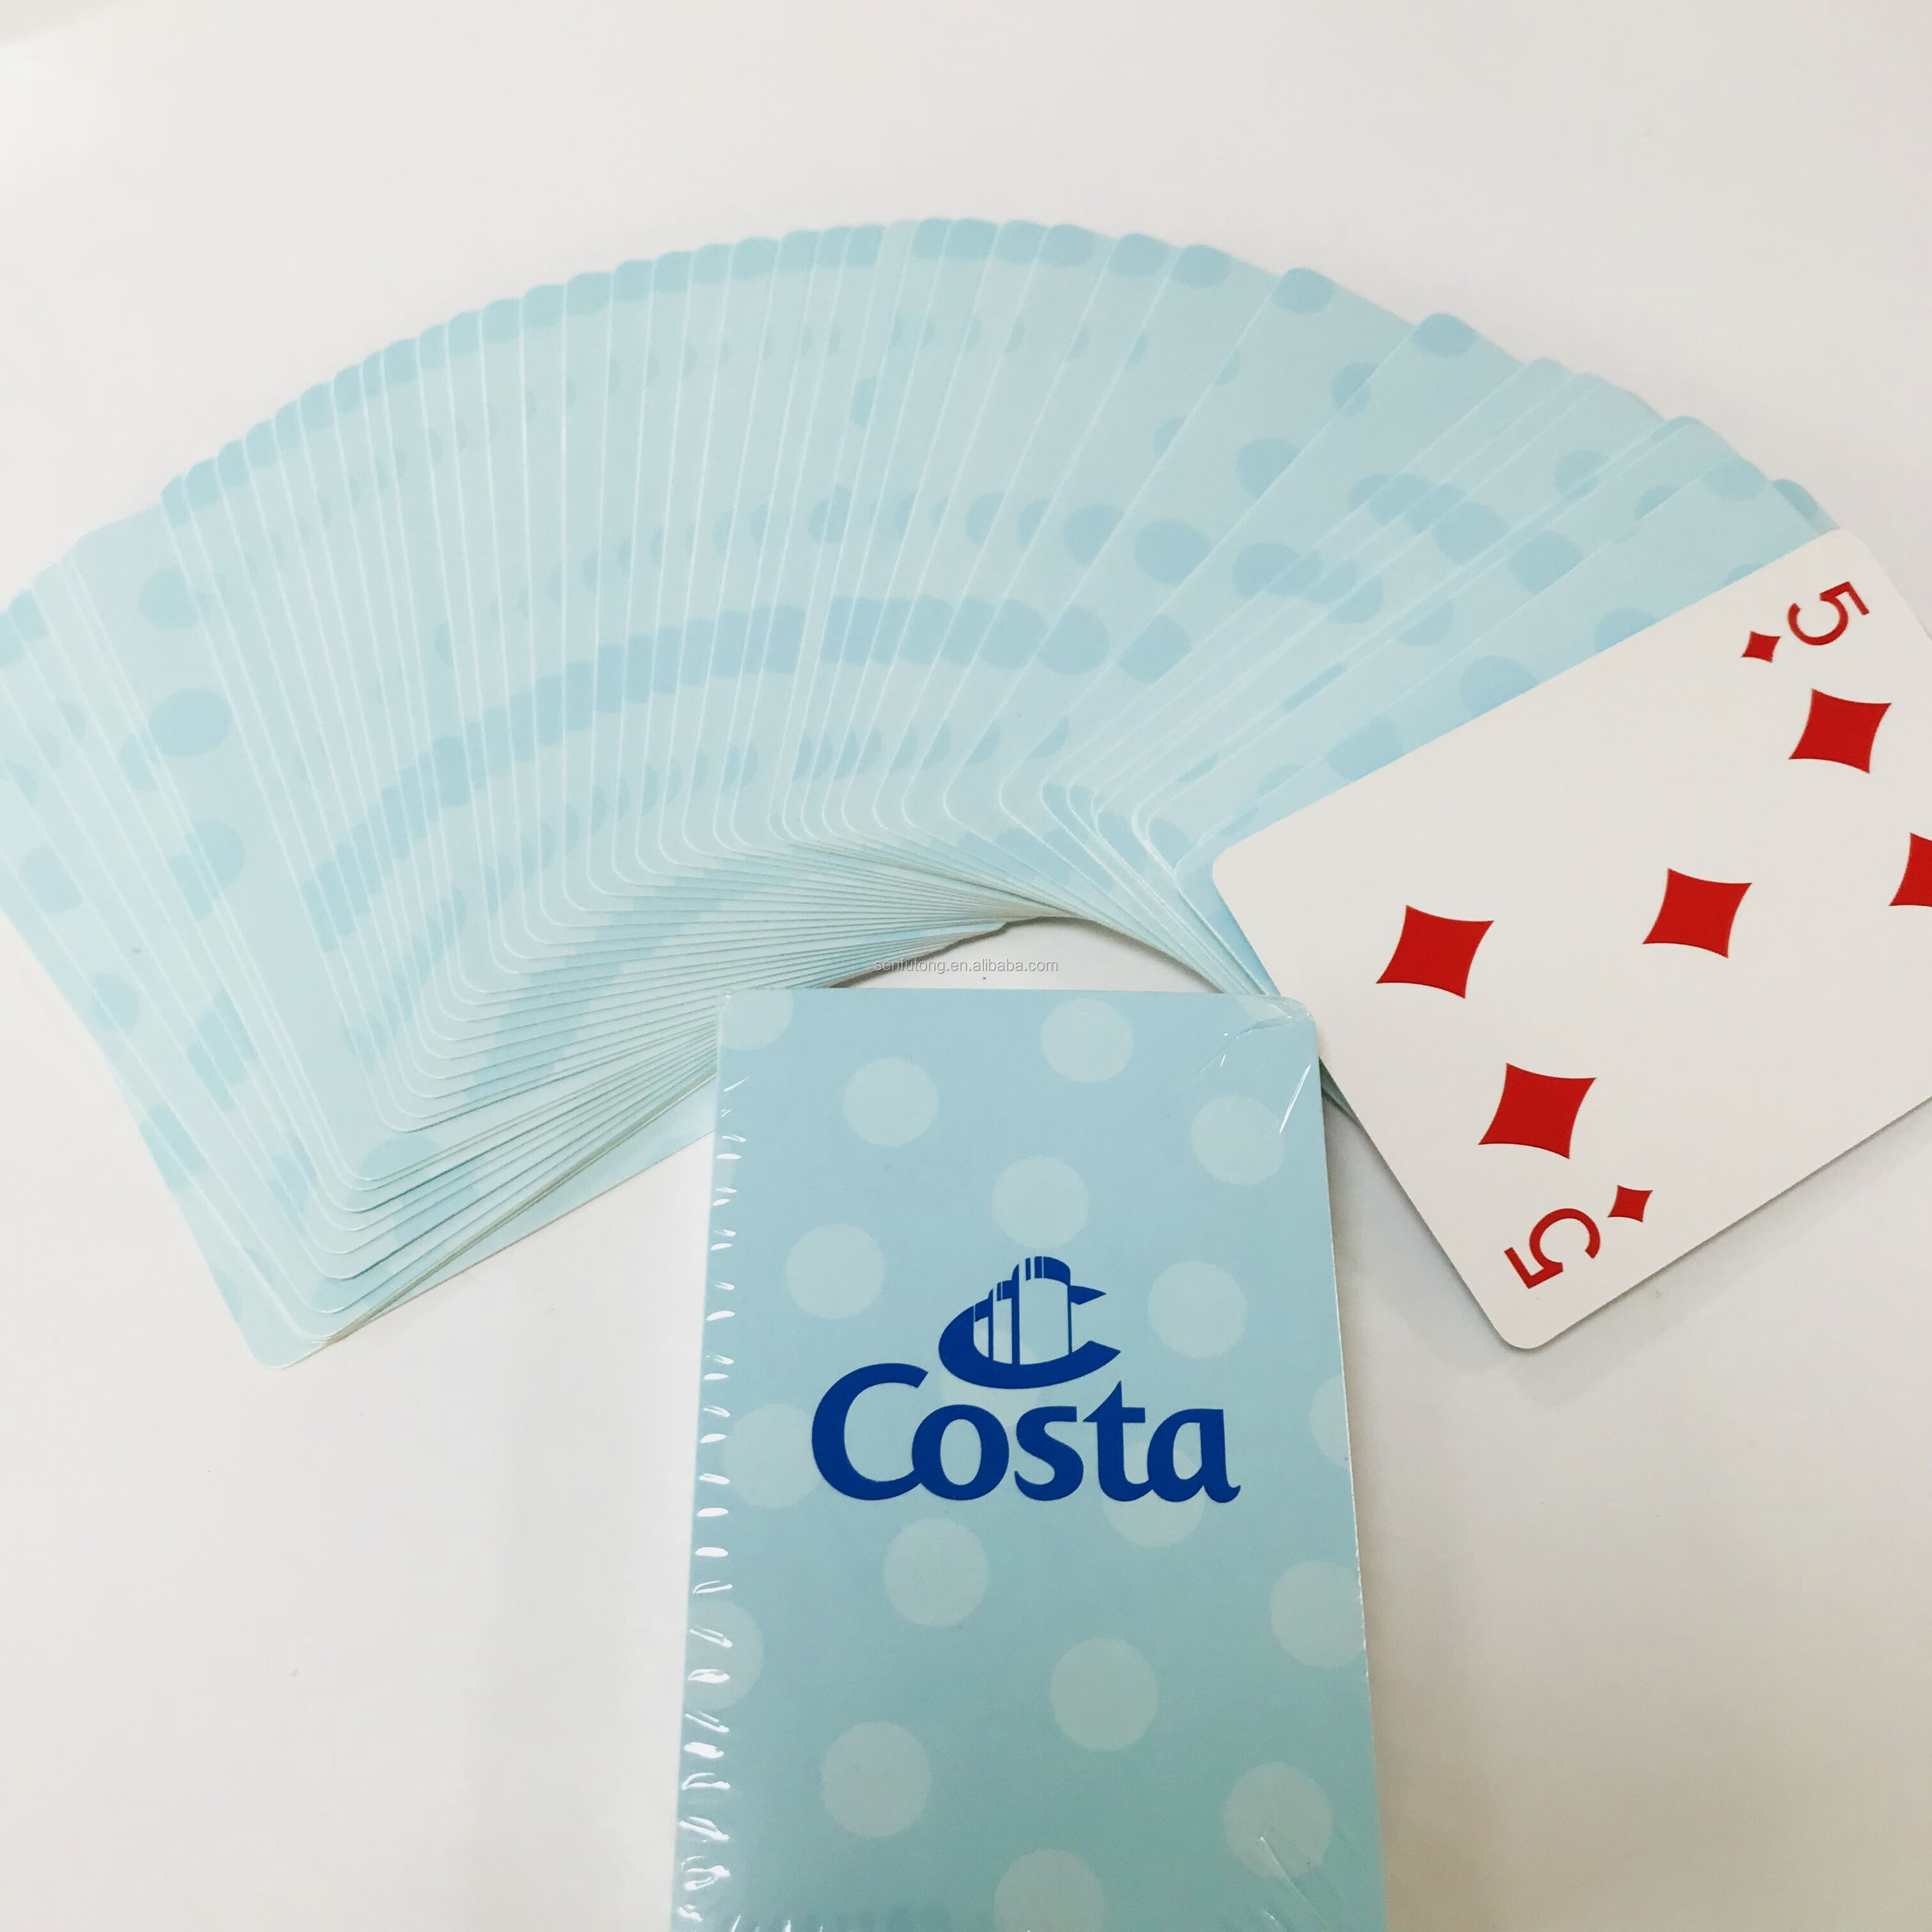 custom design 280-300gsm paper materials playing cards game cards